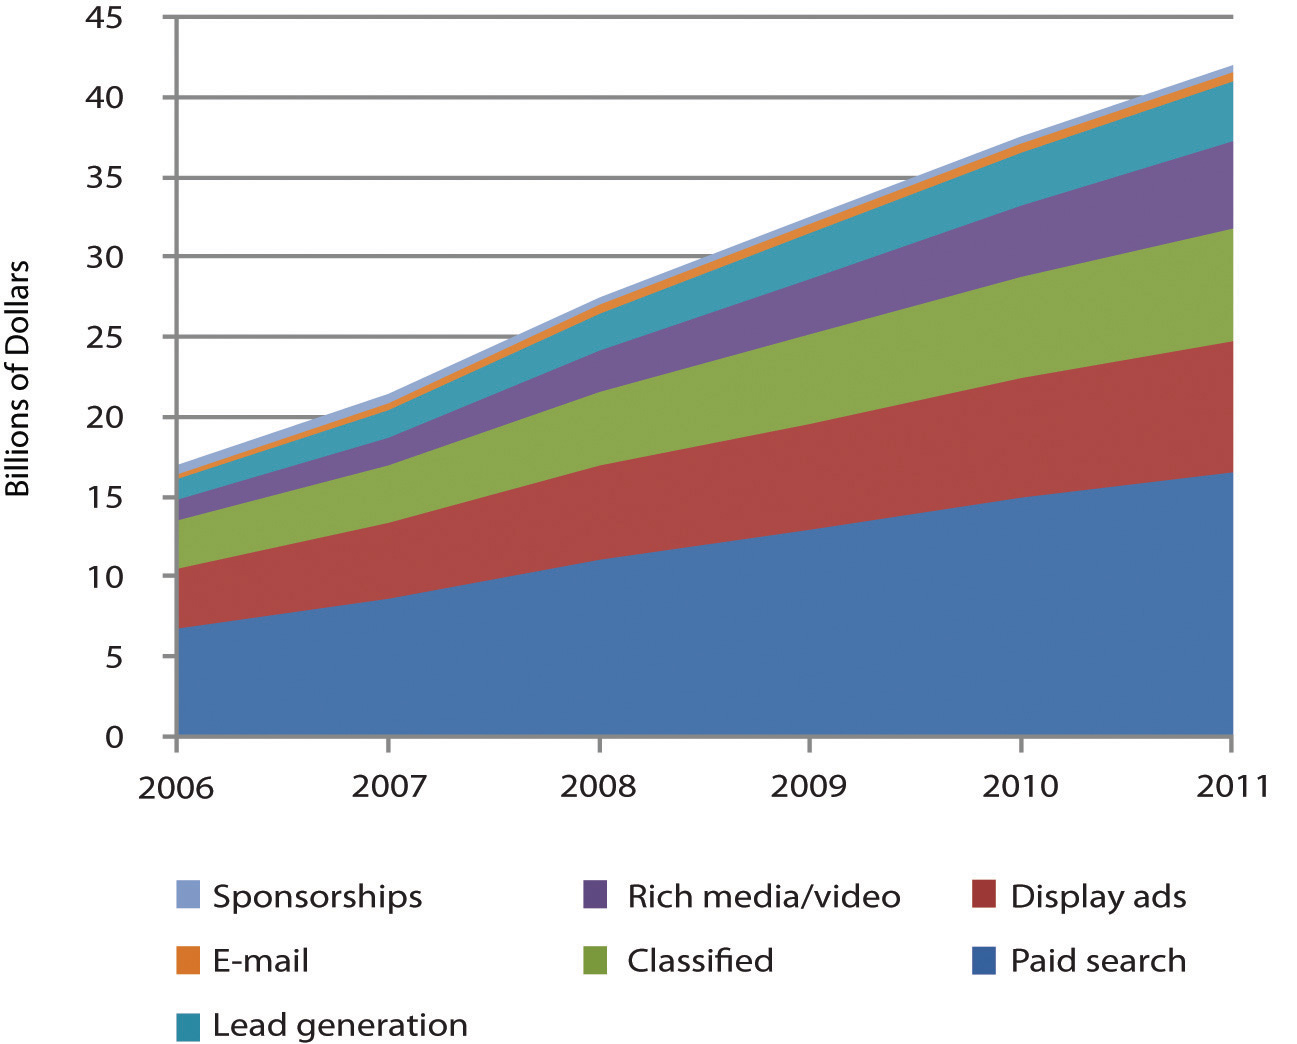 Search captures the most online ad dollars, and Google dominates search advertising. Figures for 2009 and beyond are estimates.